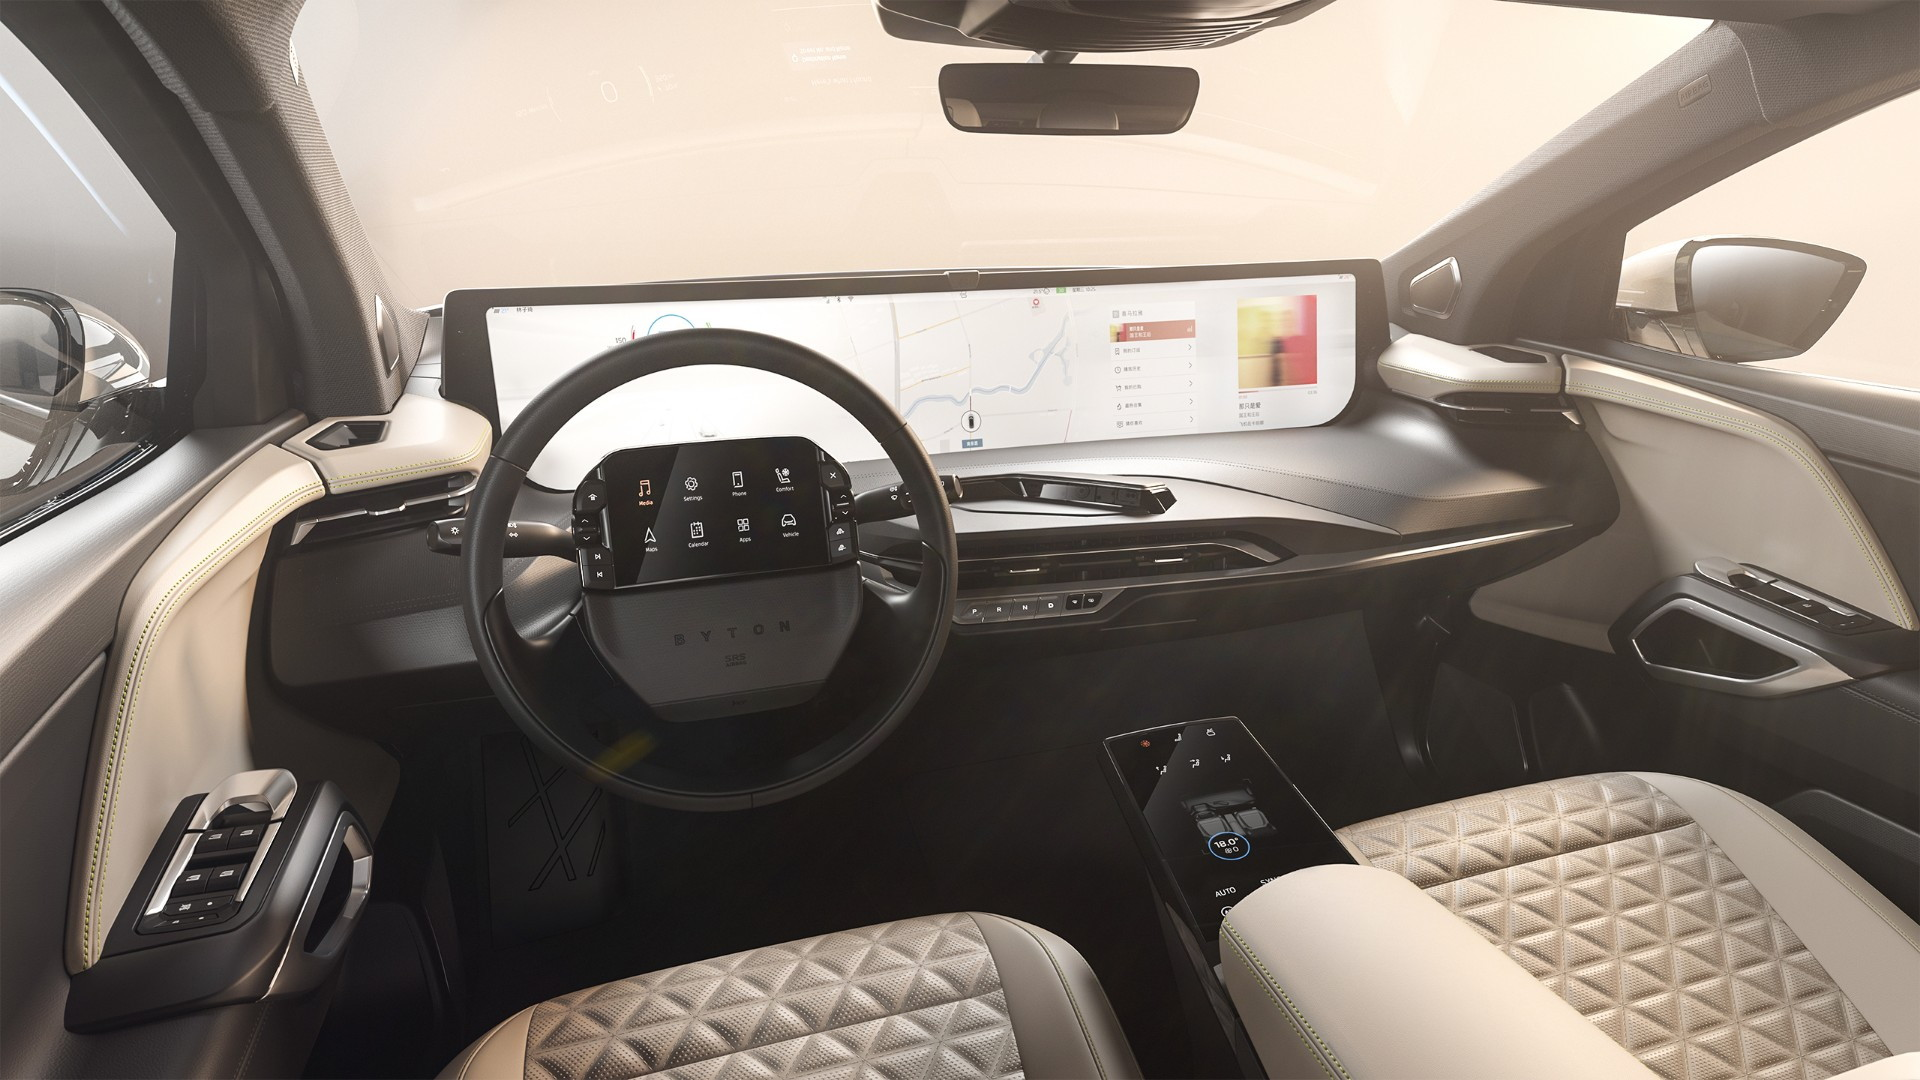 2021 Byton M-Byte production interior